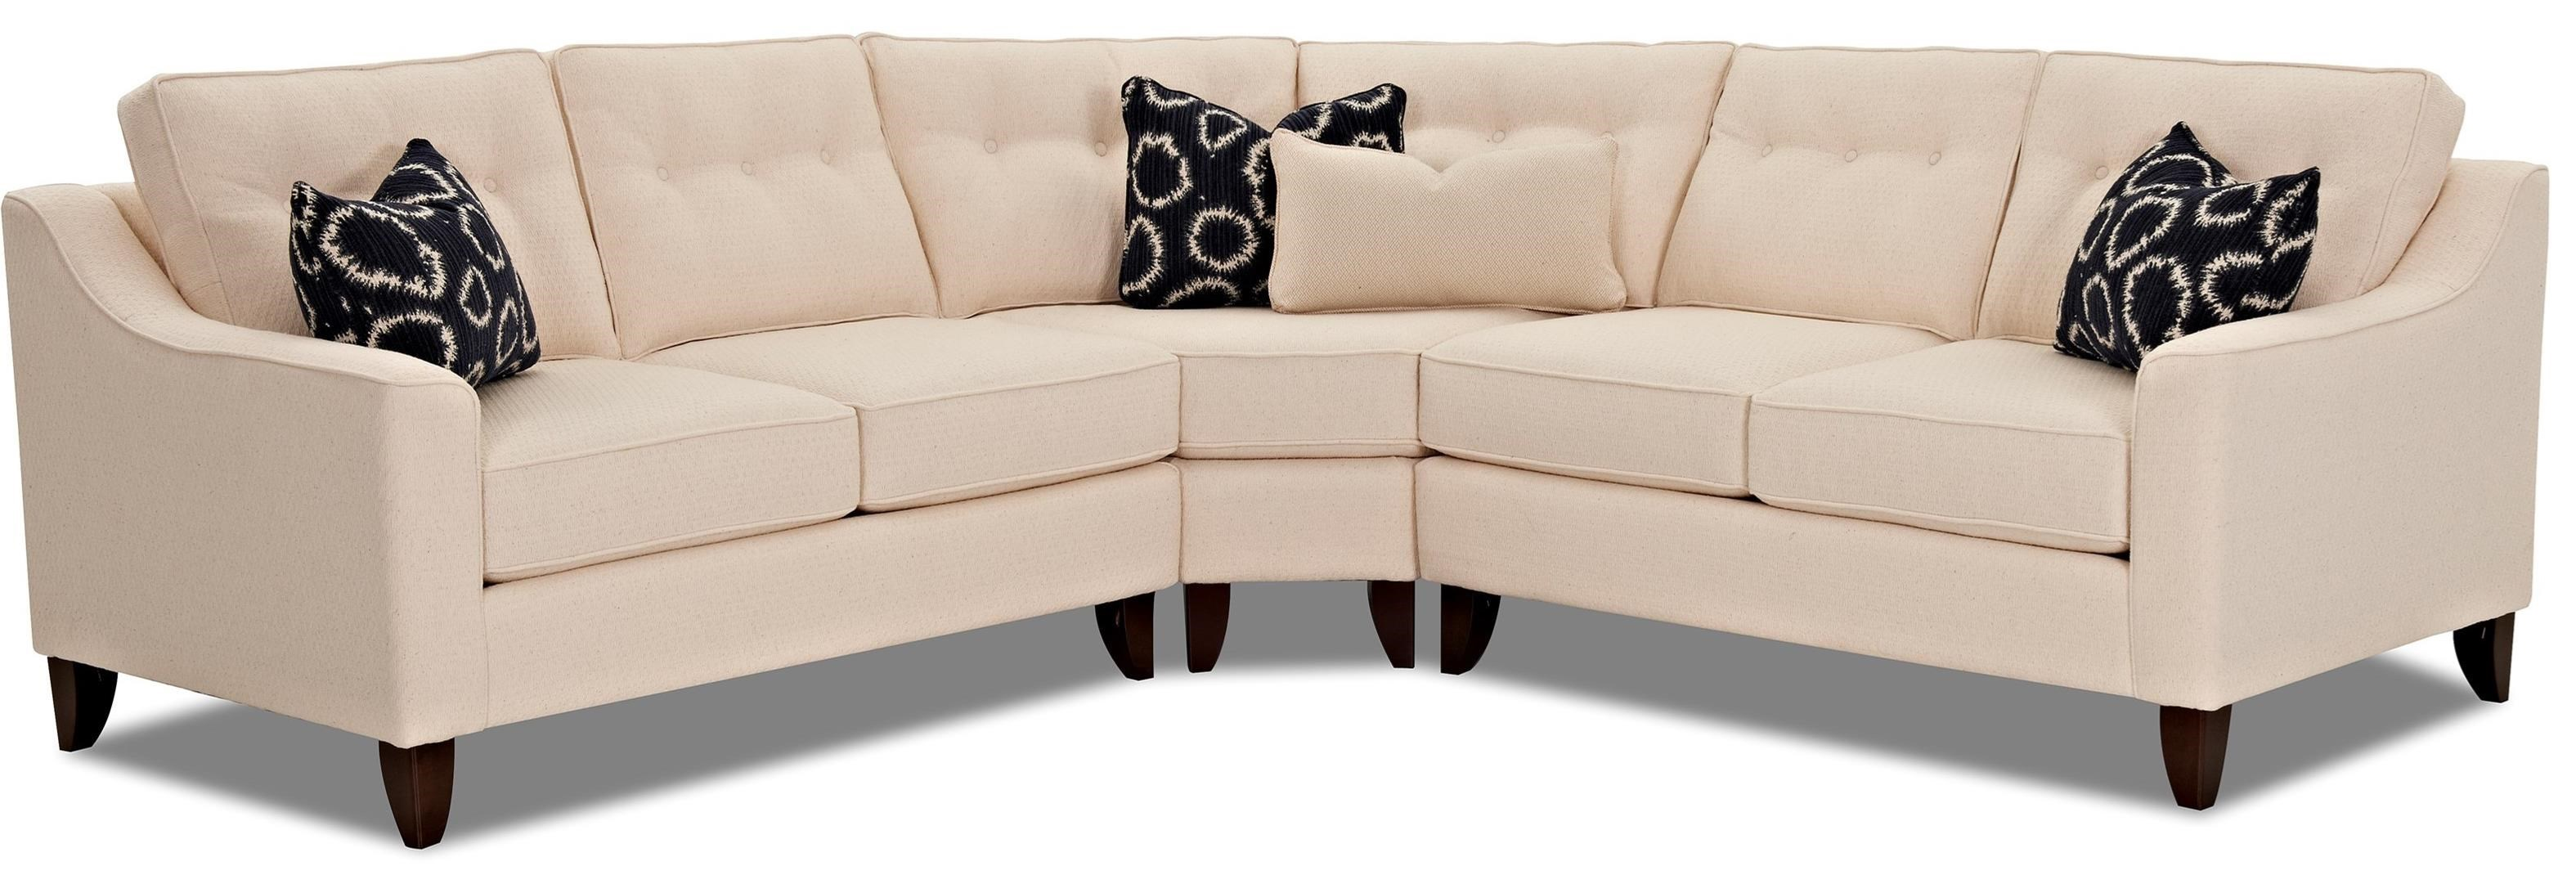 Amber Sectional Sofa With Ottoman Tan Canterbury 3piece Sectional